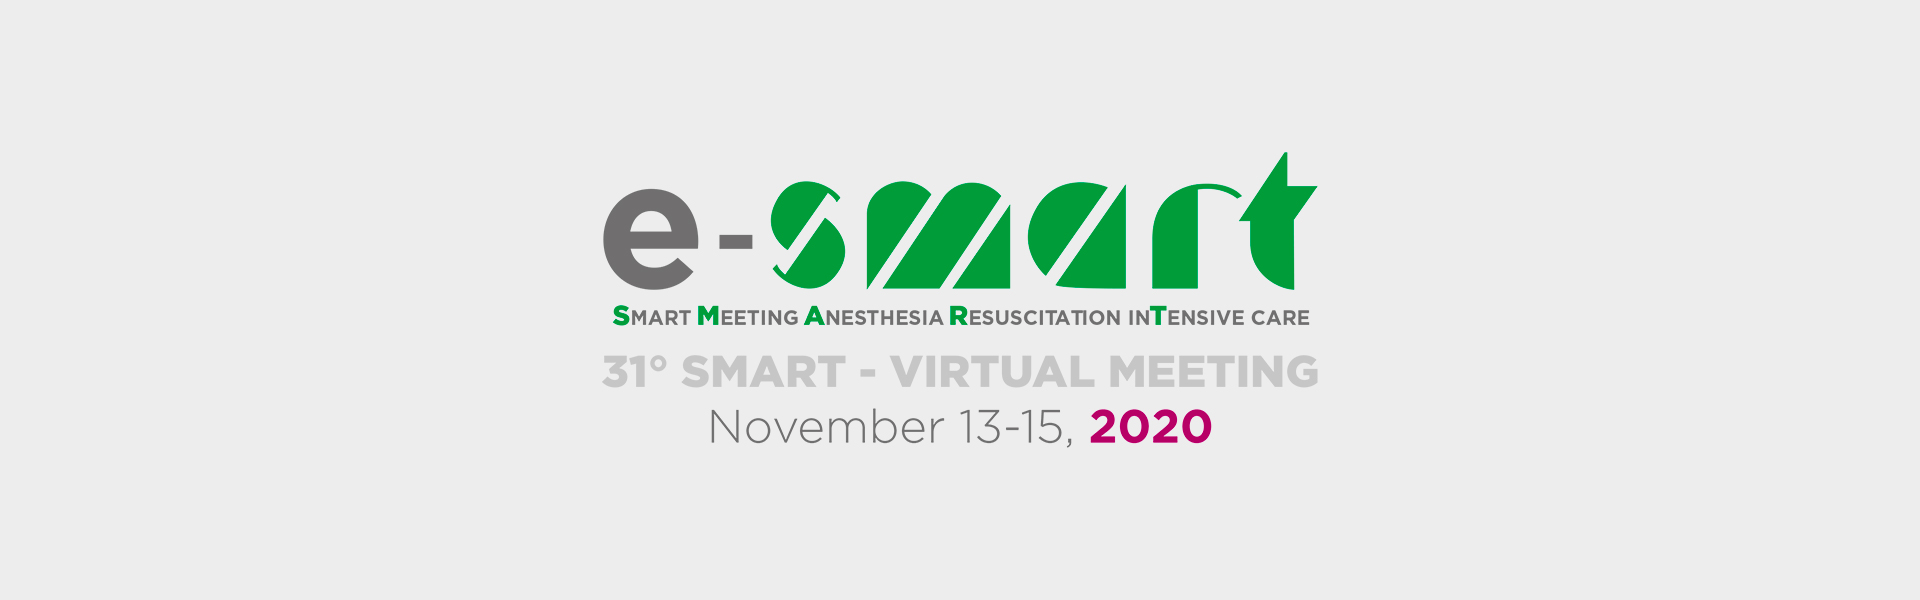 e-SMART: virtual meeting